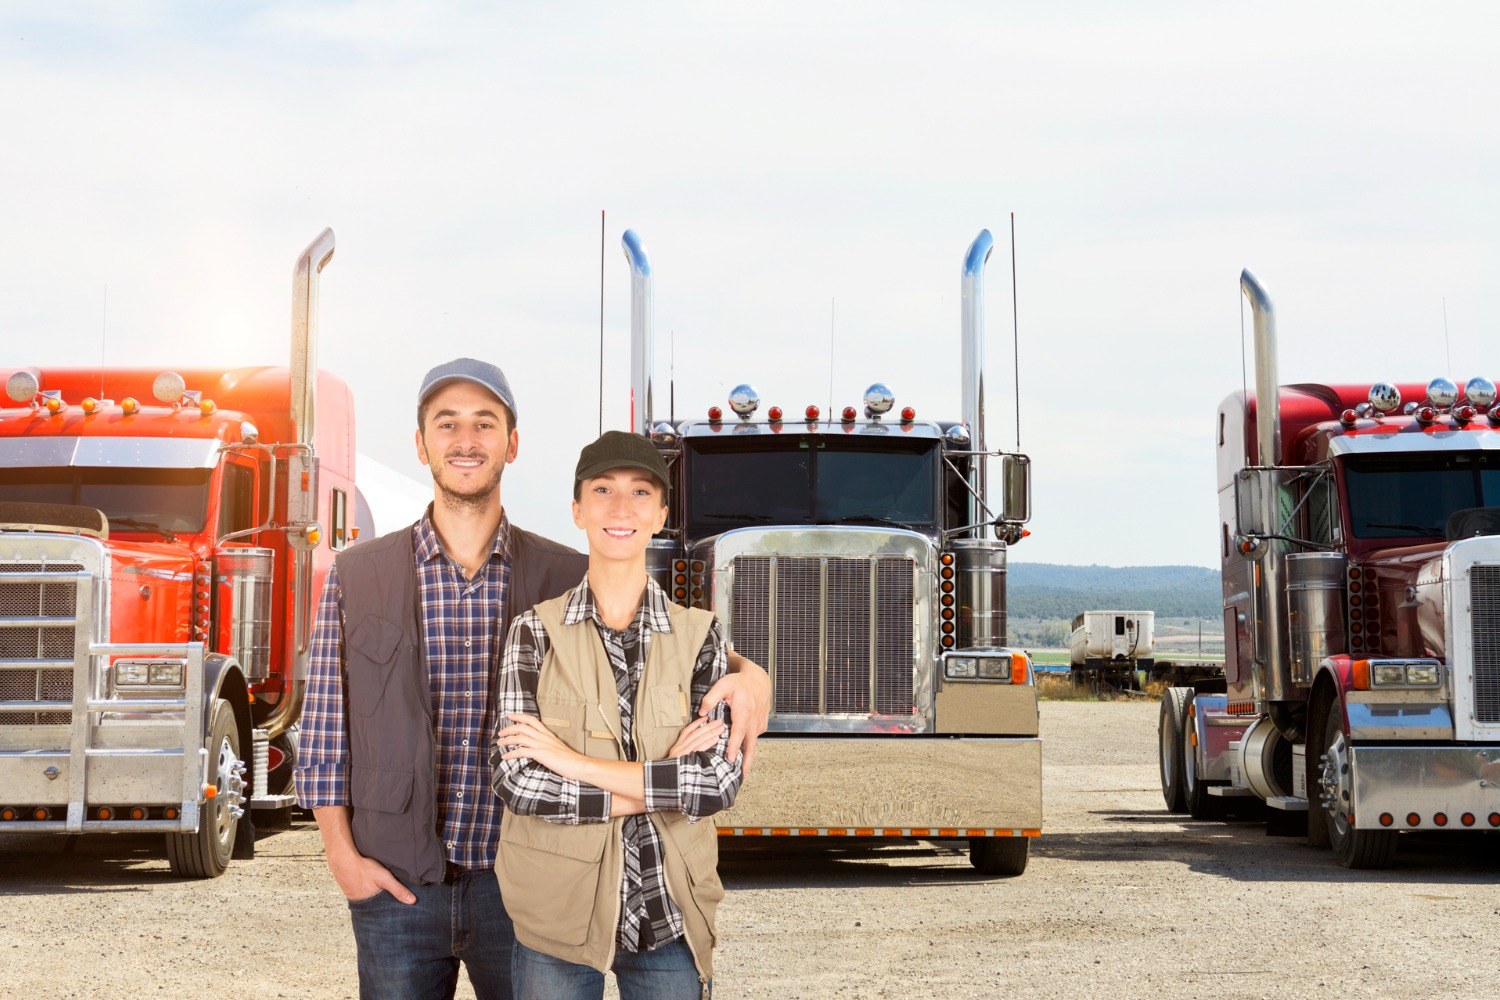 Truck Insurance for a New Venture